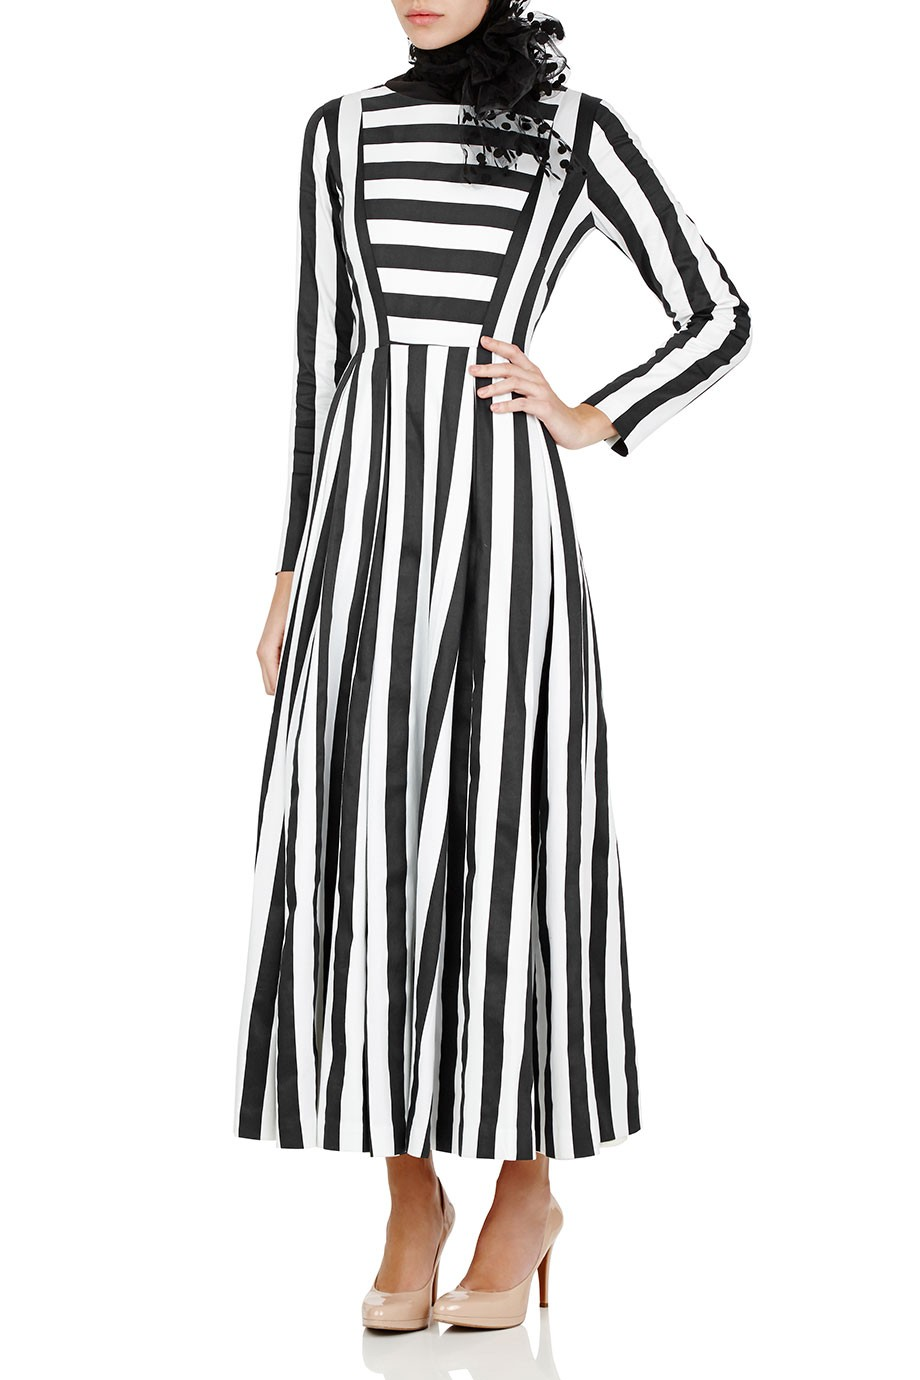 Diana-Kotb-Touring-Dress-Stripe-01